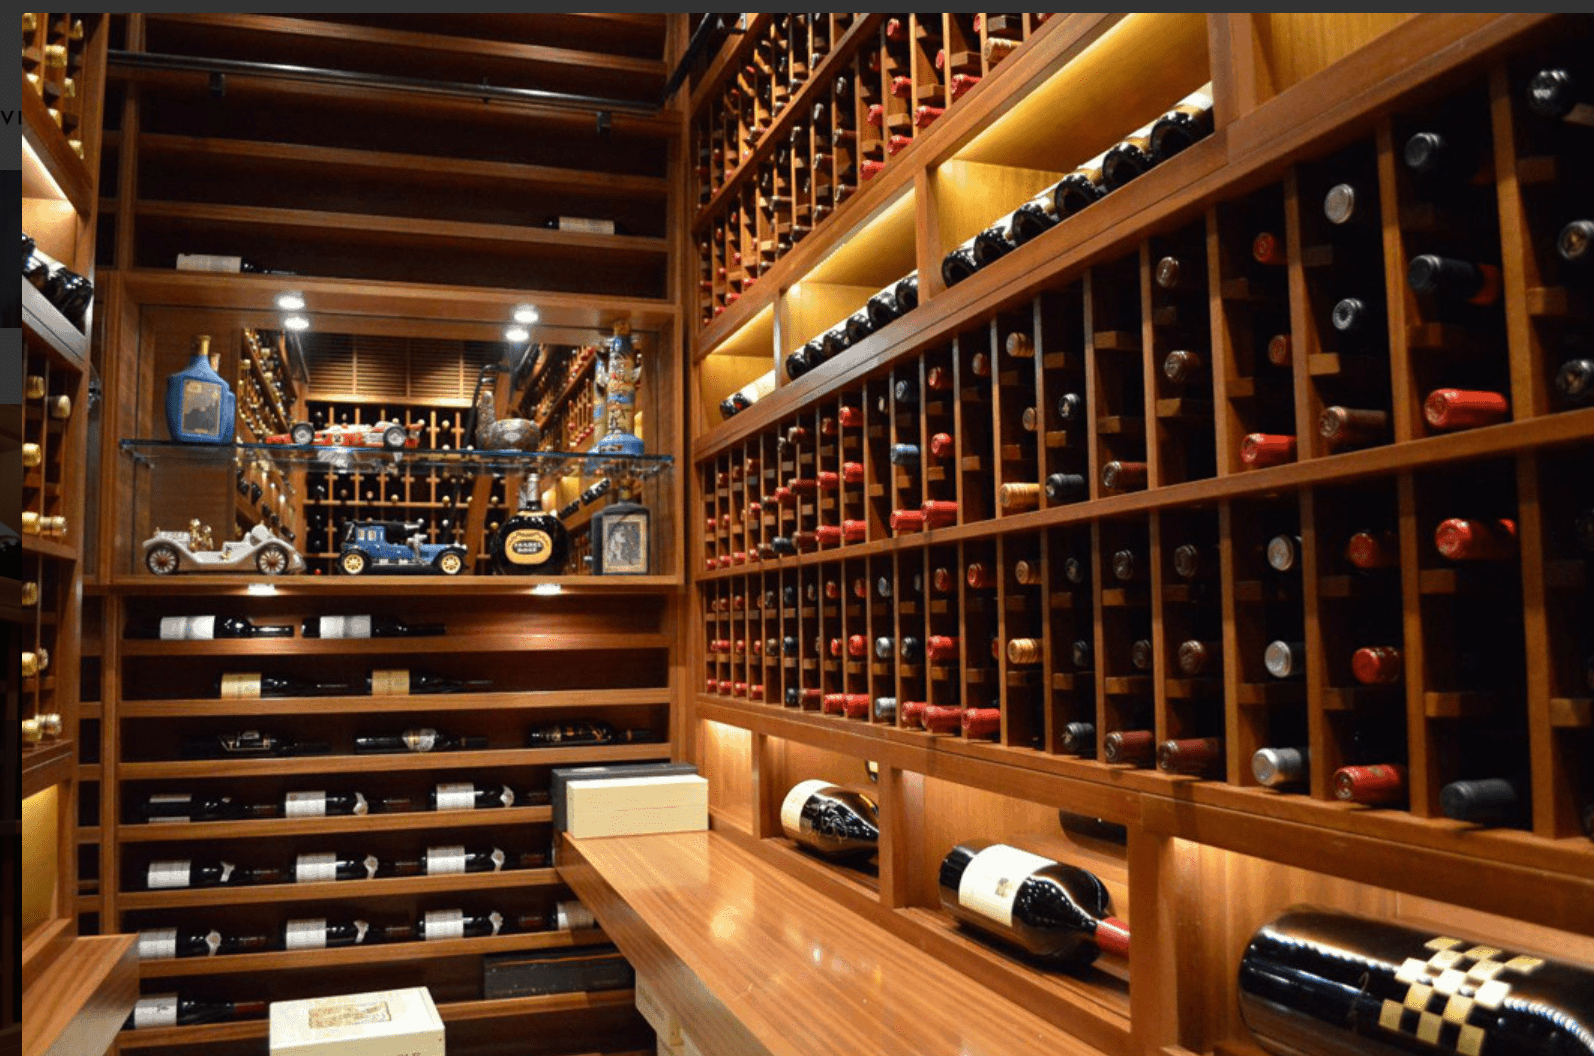 Gorgeous custom designed and built wine cellar with tasting bar and open glass shelving in addition to the myriads of wine bottle storage space.